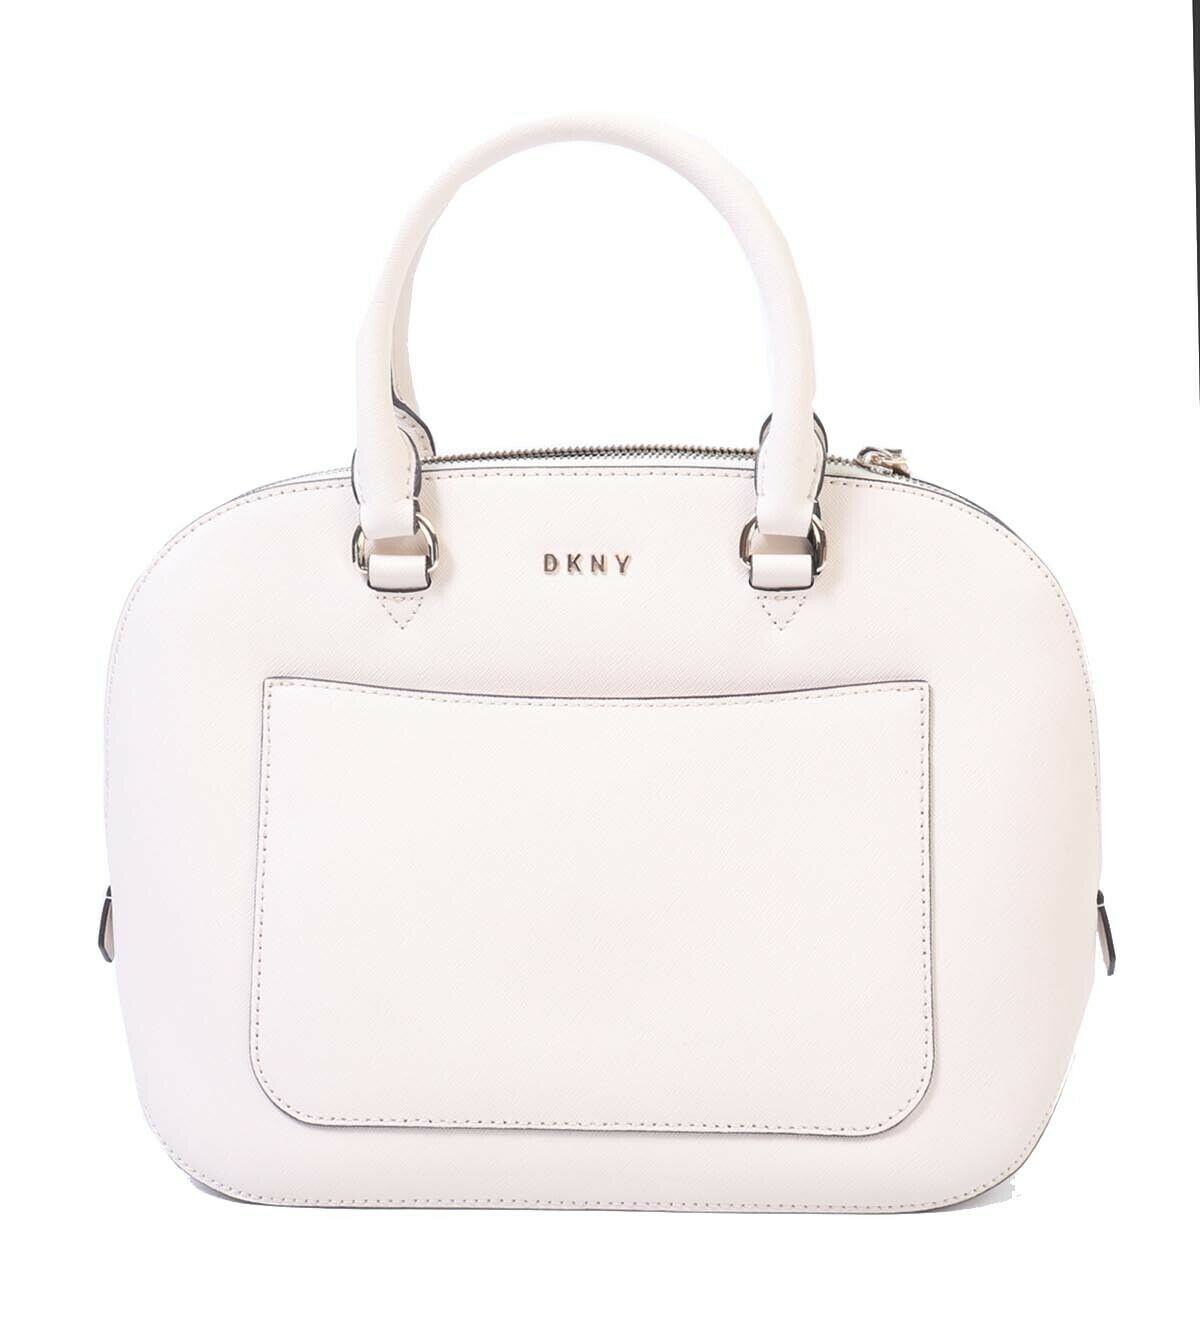 NWT DKNY Saffiano Large Satchel Bag Purse Classic Dome Ivory White Gold R81D1285 - $100.98